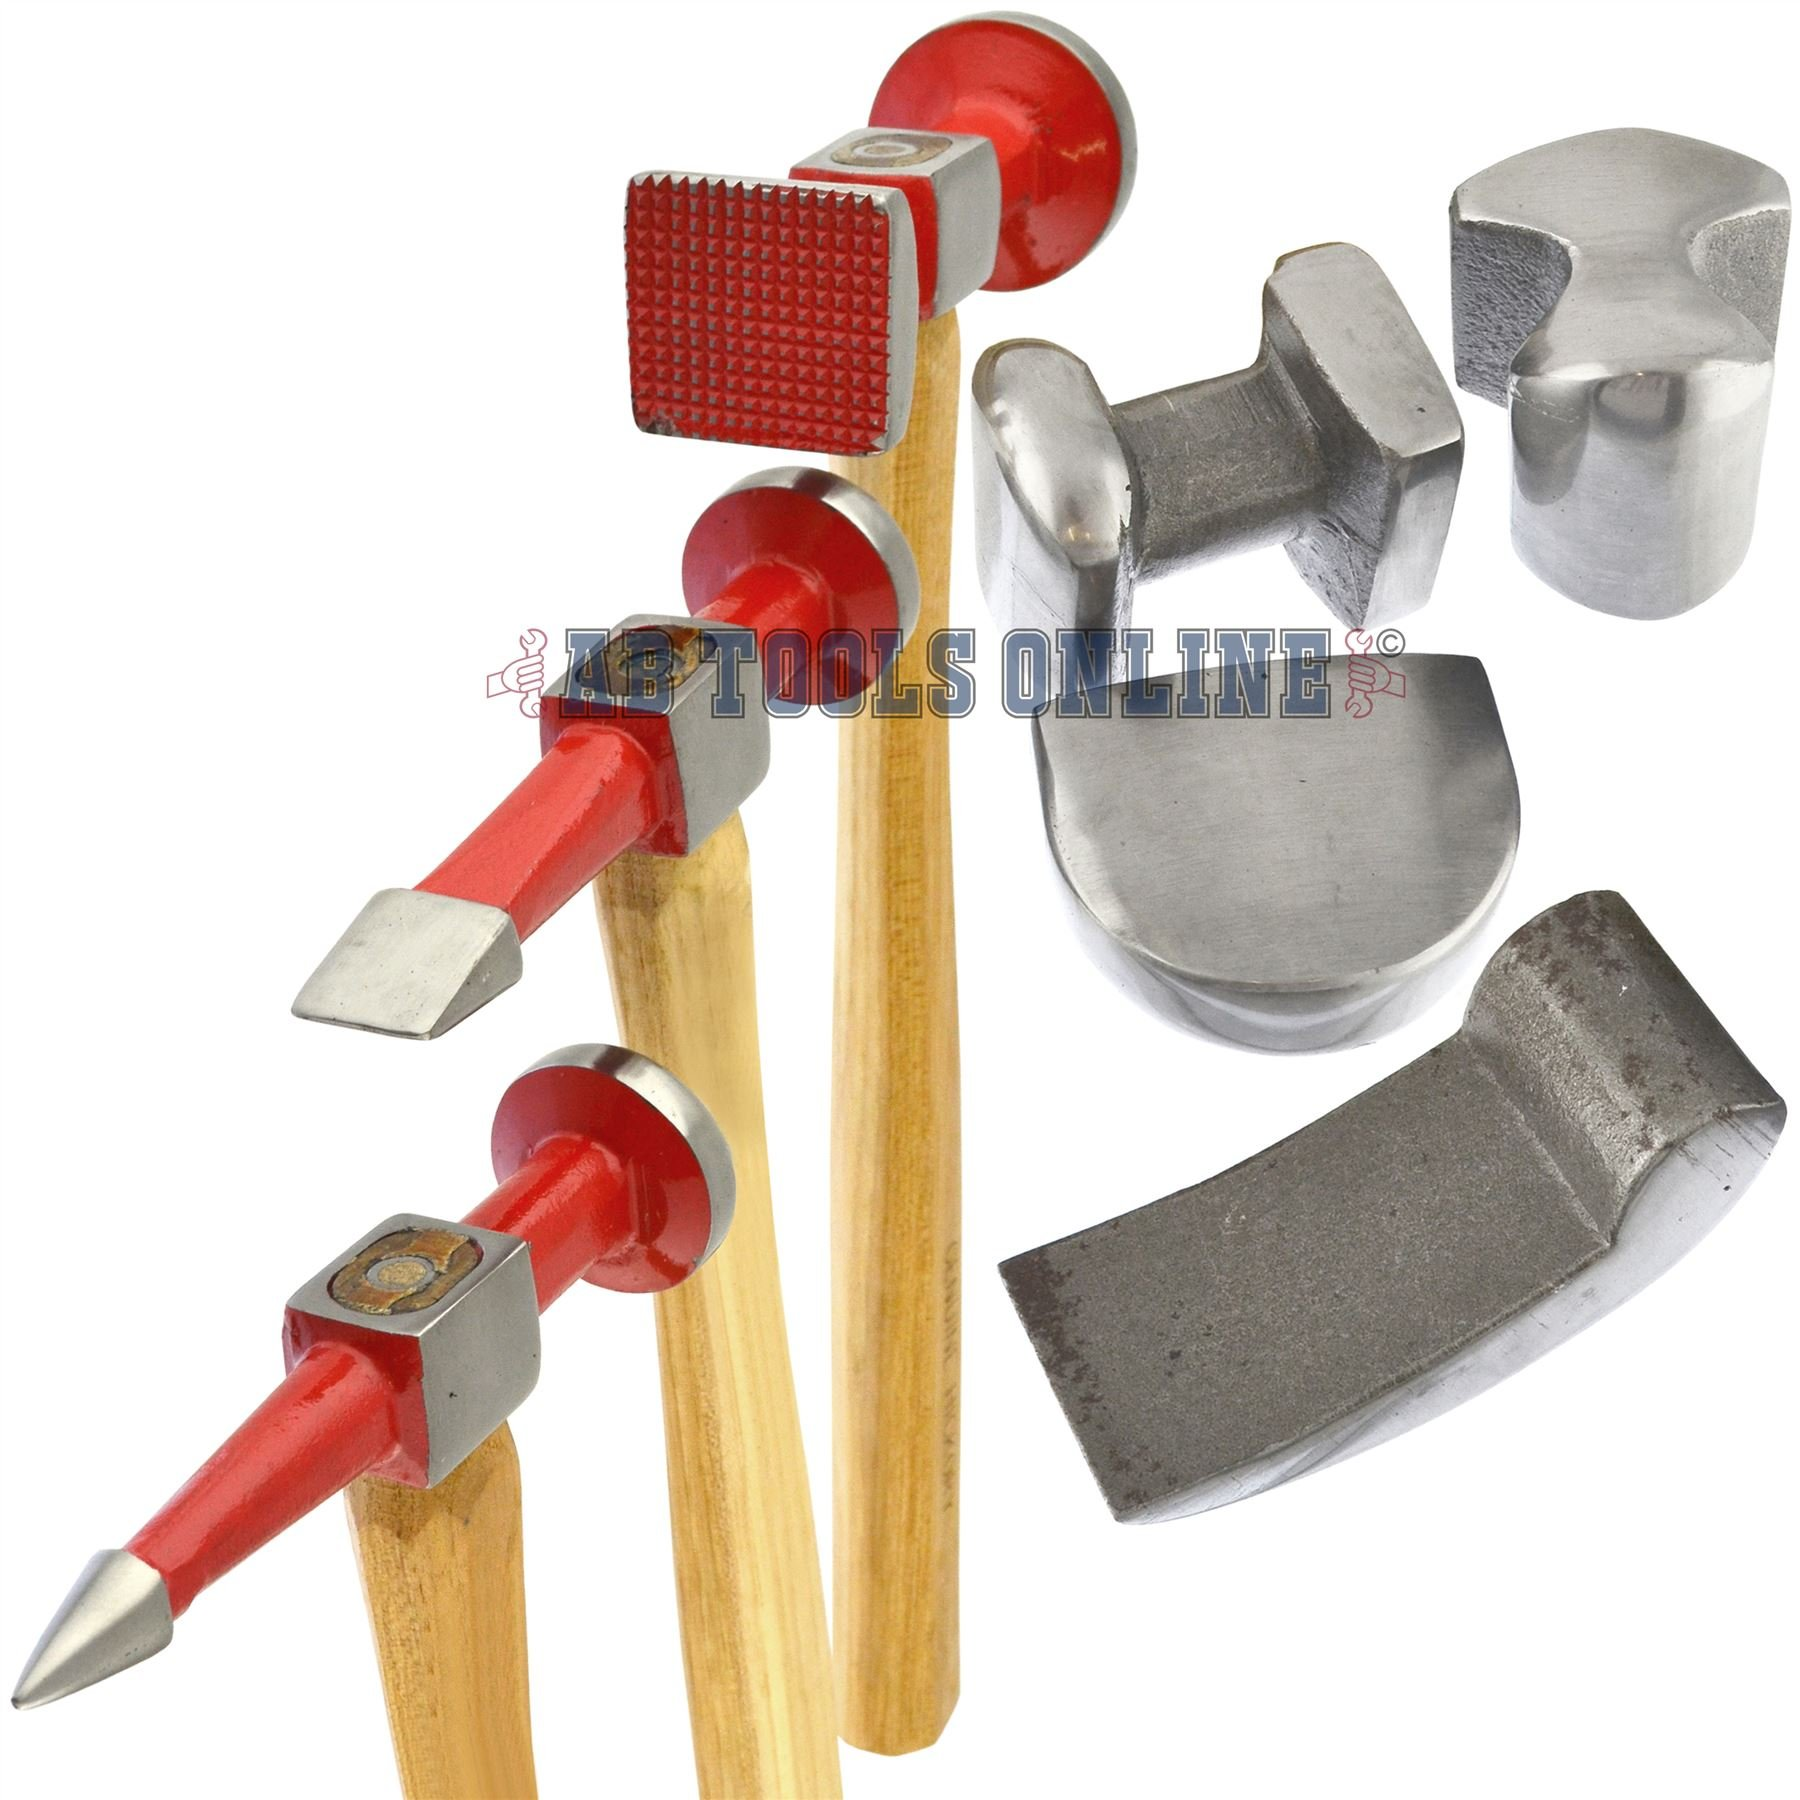 AB Tools-Neilsen Auto Body Repair Kit Panel Beating Hickory Hammers Dollies Shrinking 7pc AN021 by AB Tools-Neilsen (Image #4)